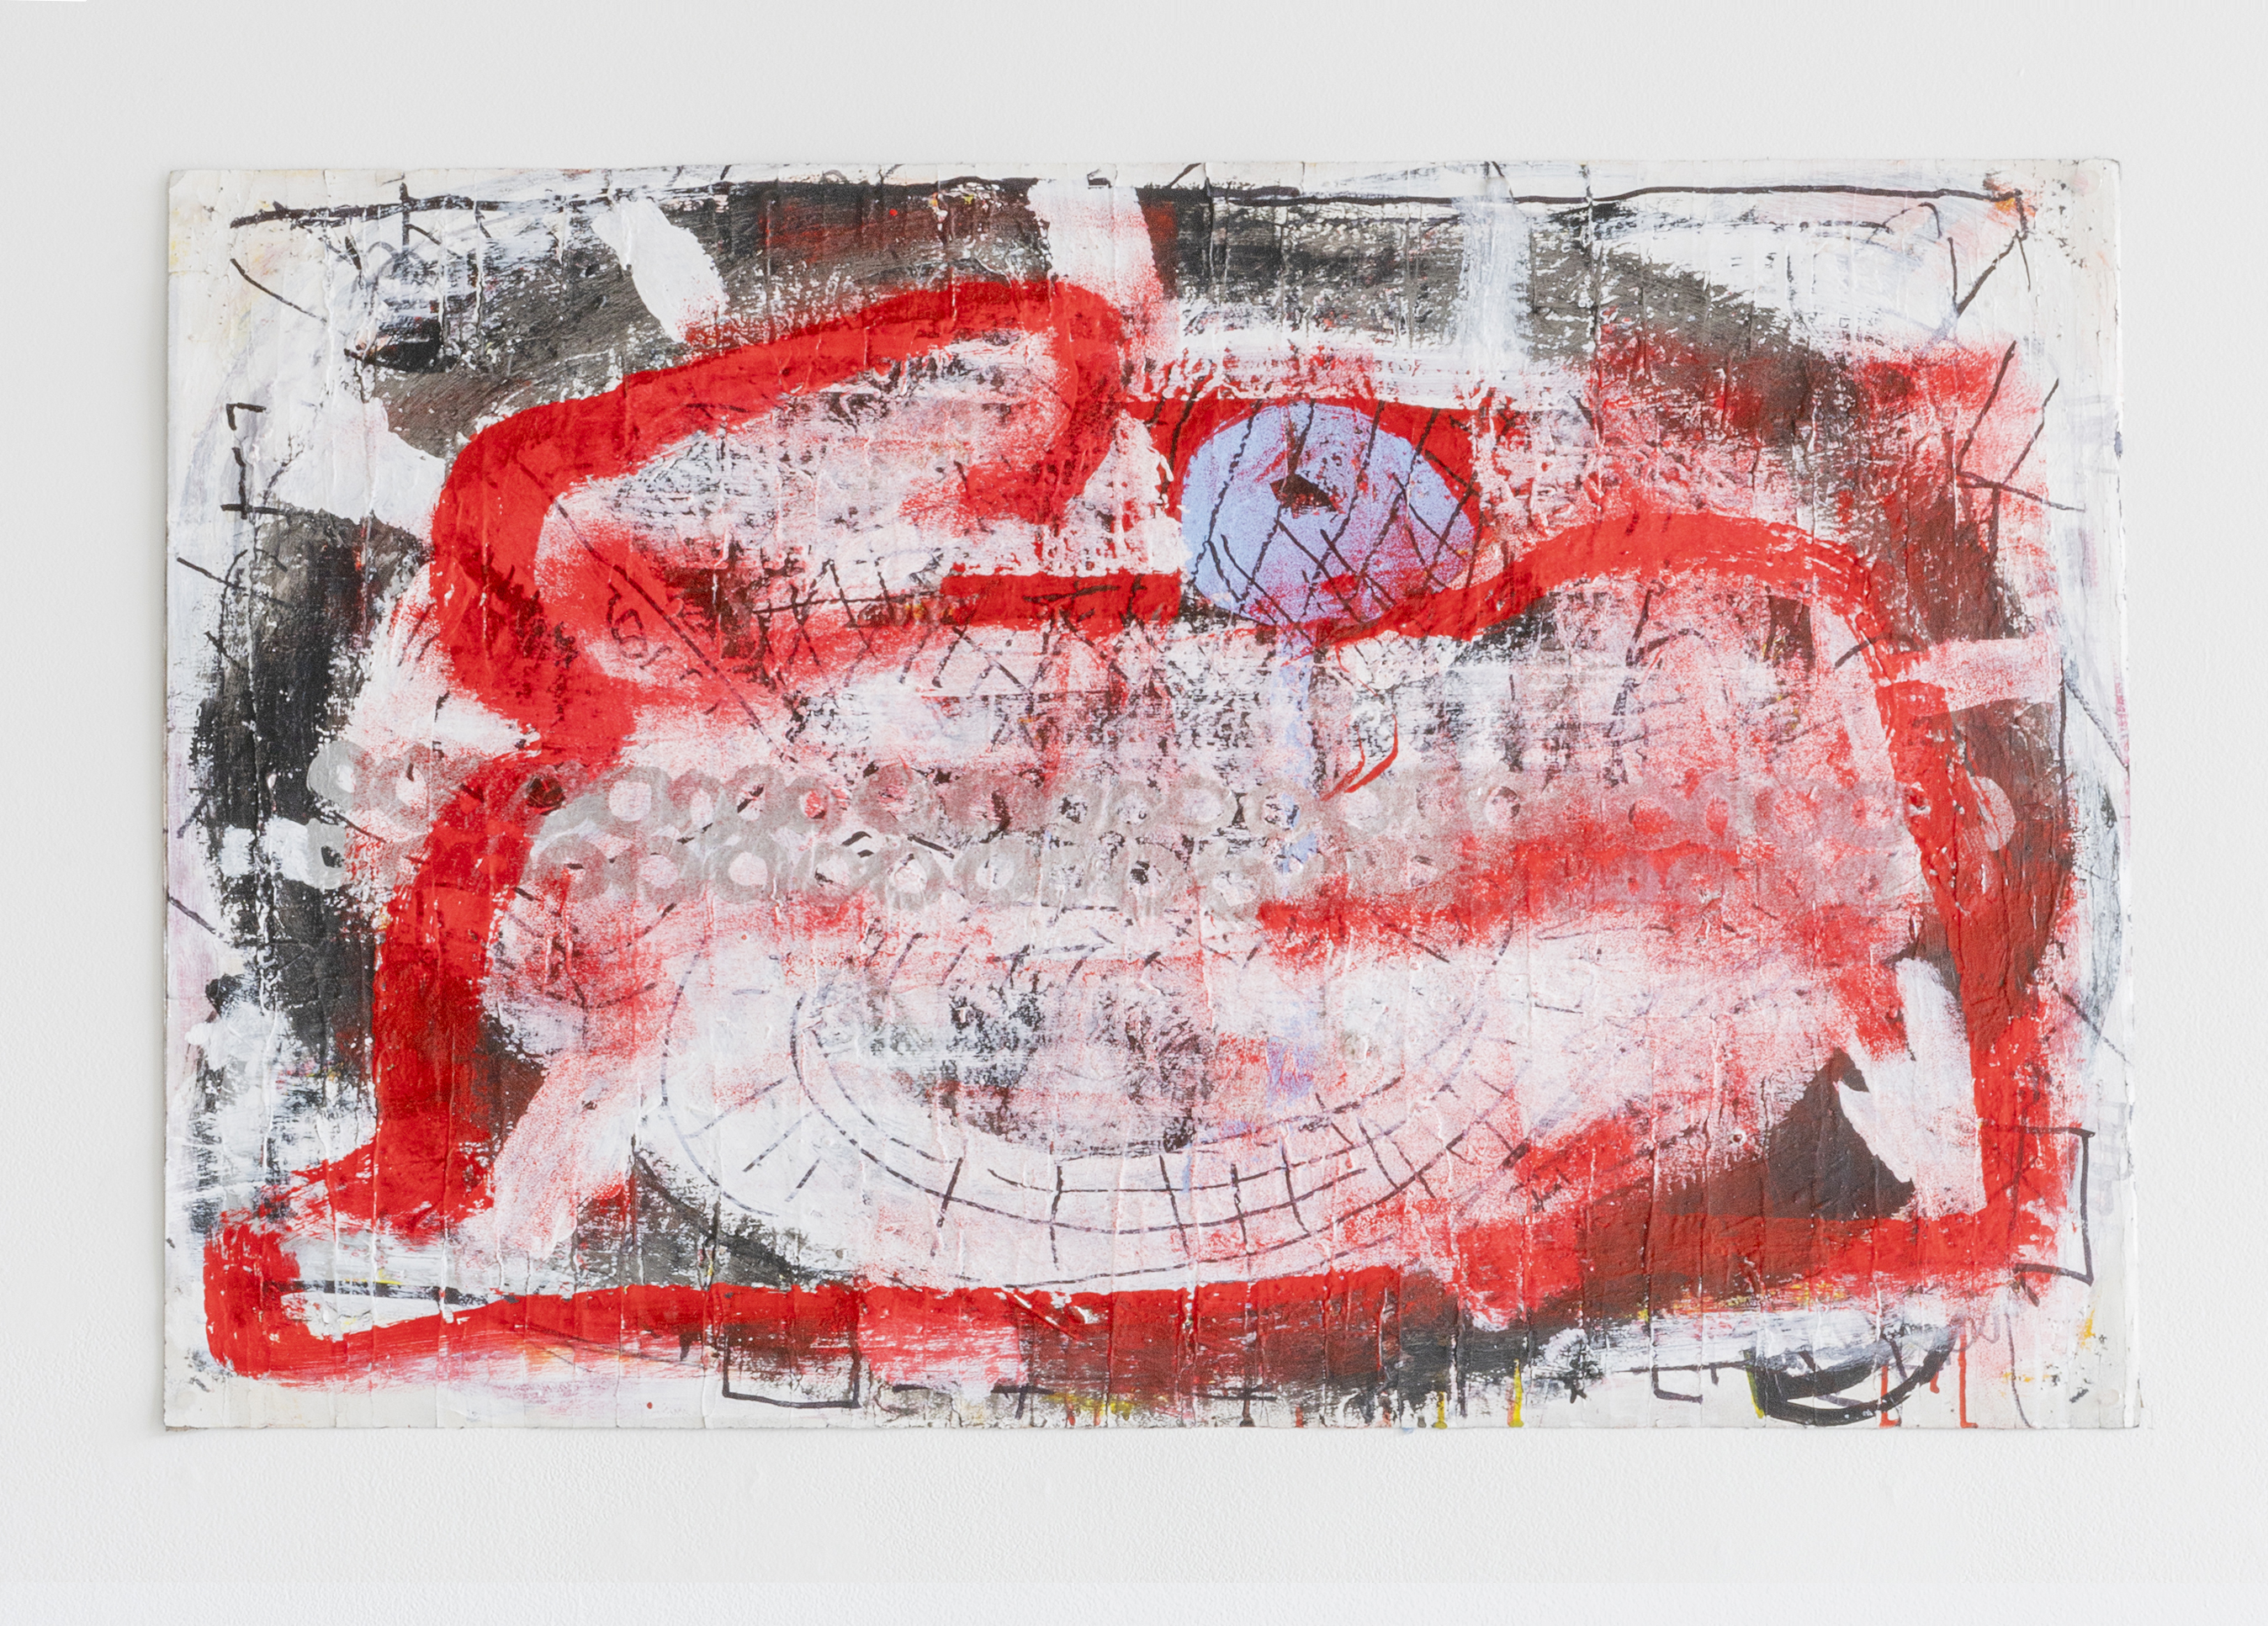 Luchs_Red_Rabbit_4_on_paper_26x40_2020_DESOUSA_GALLERY